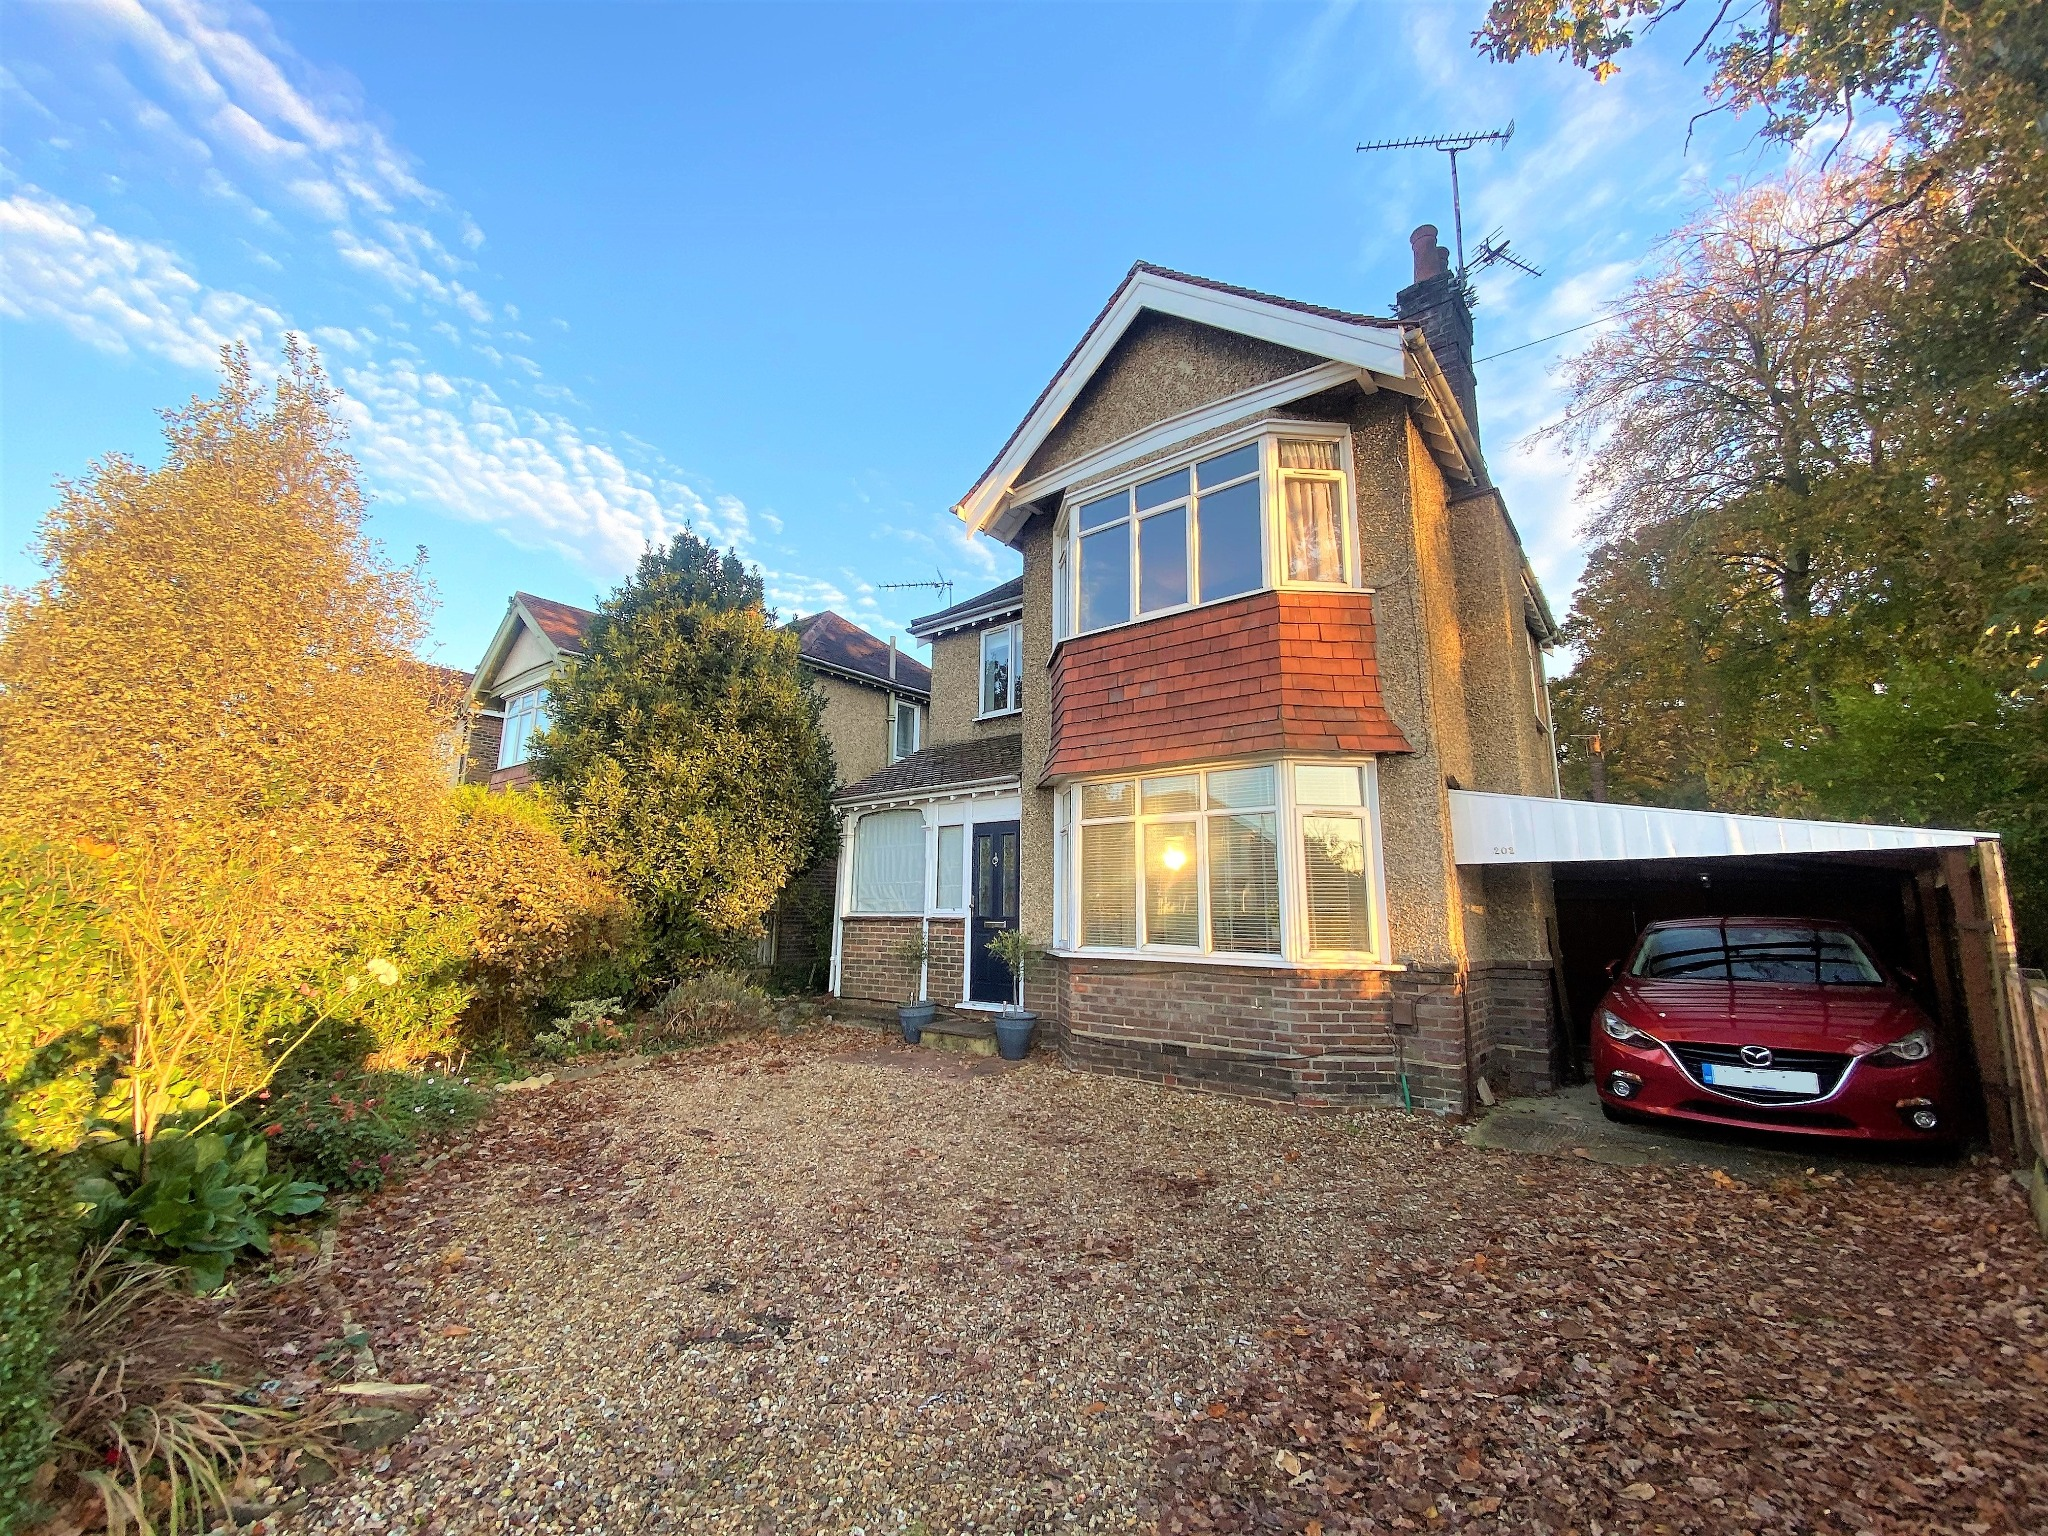 £300,000 - £325,0000 TWO RECEPTION ROOMS! EXTENDED! BEAUTIFULLY PRESENTED!